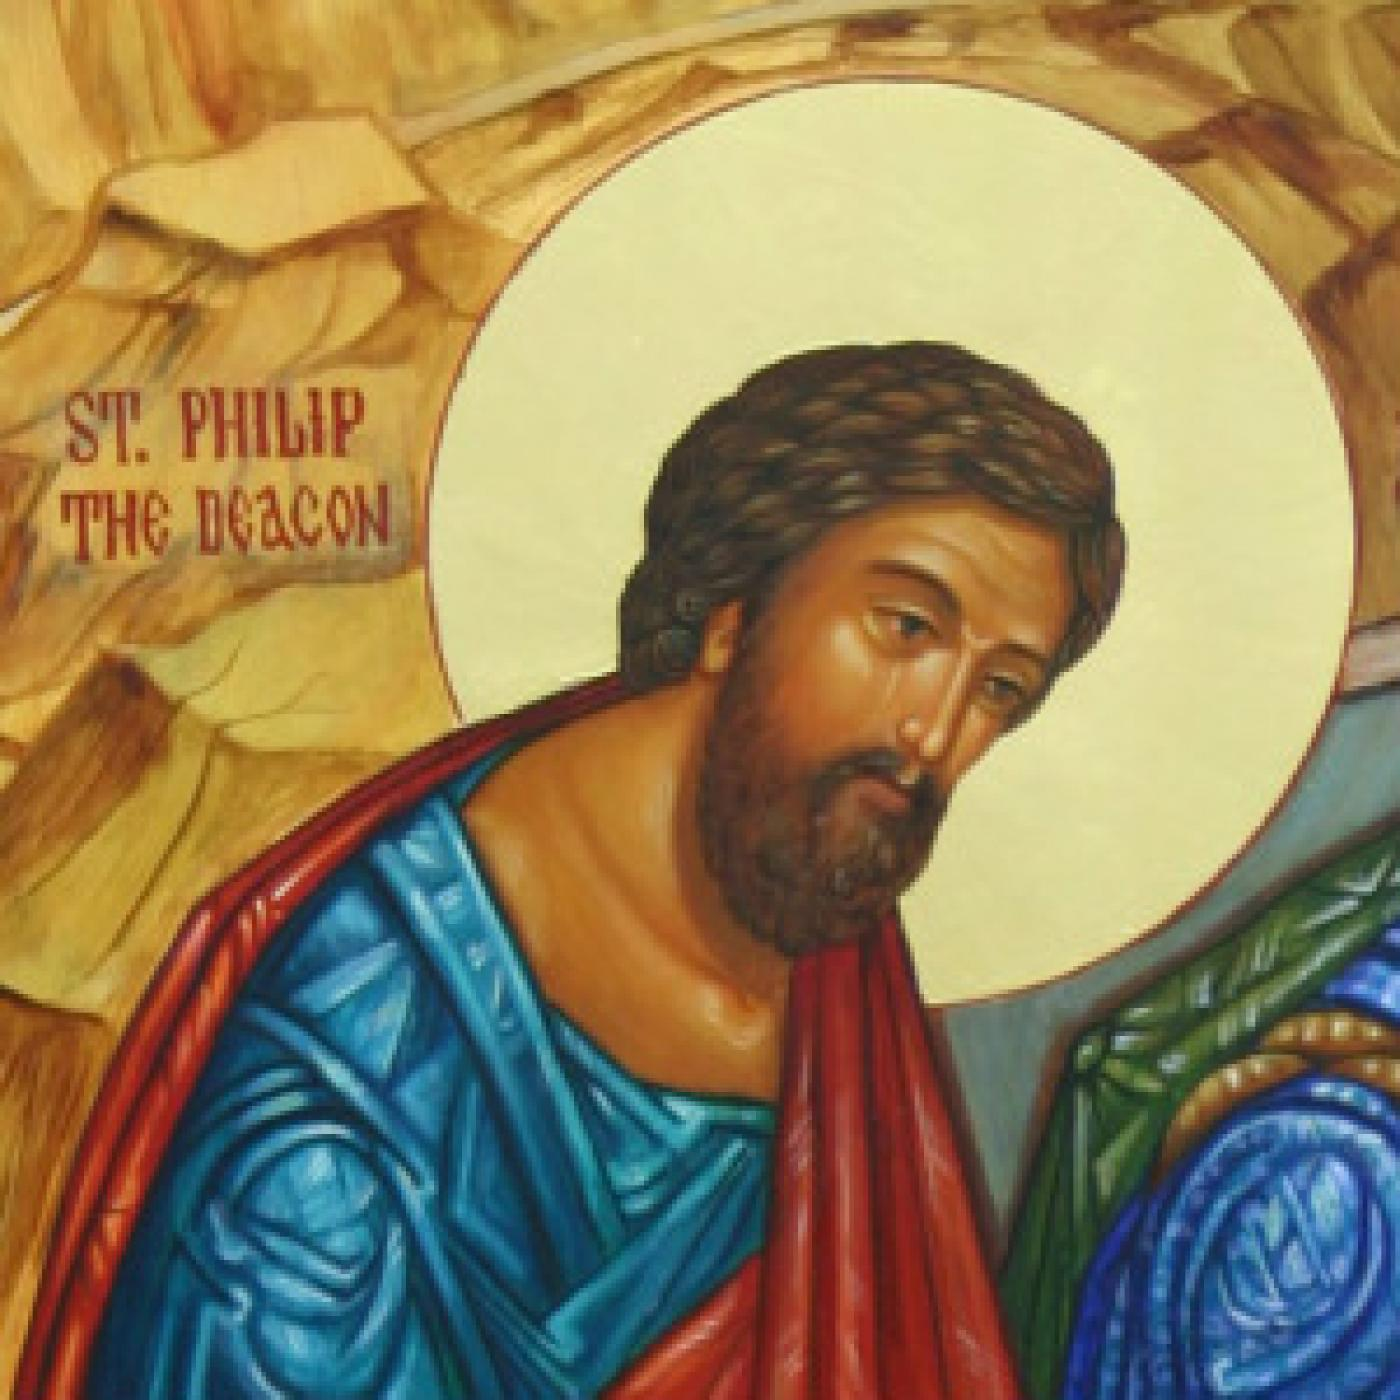 Sermons from St. Philip the Deacon